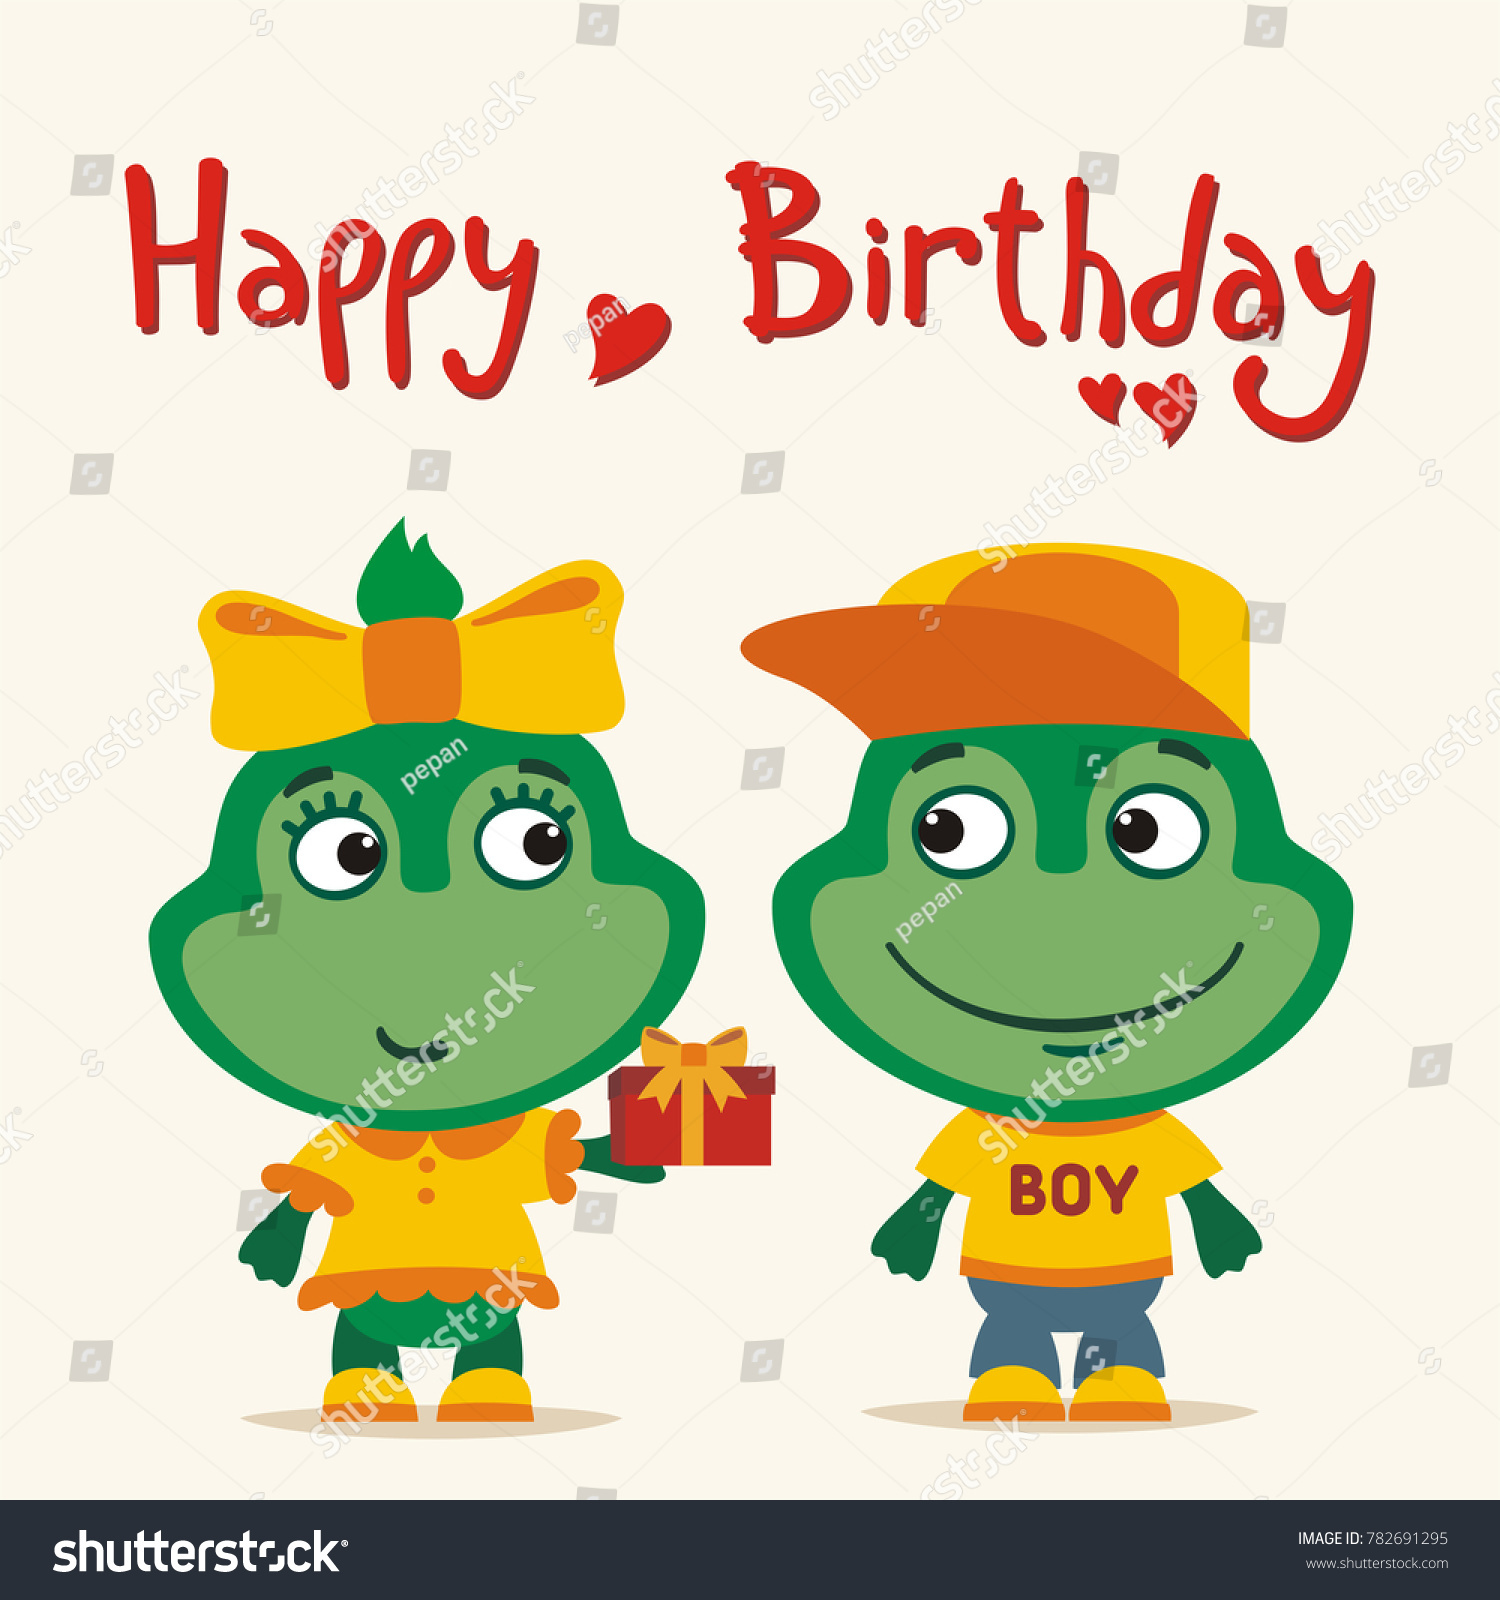 Happy birthday greeting card funny frog stock vector 782691295 happy birthday greeting card funny frog stock vector 782691295 shutterstock kristyandbryce Image collections